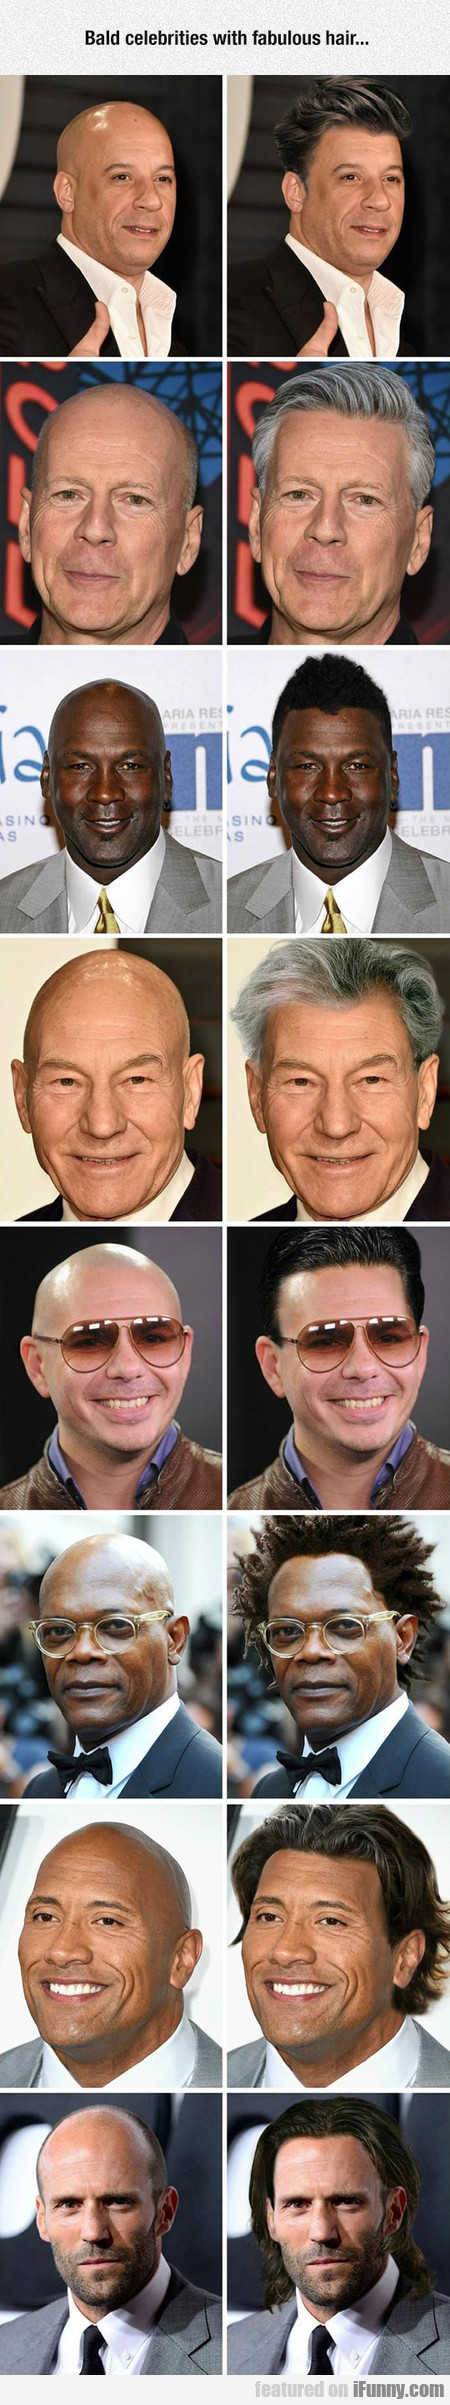 If Bald Celebrities Had Hair